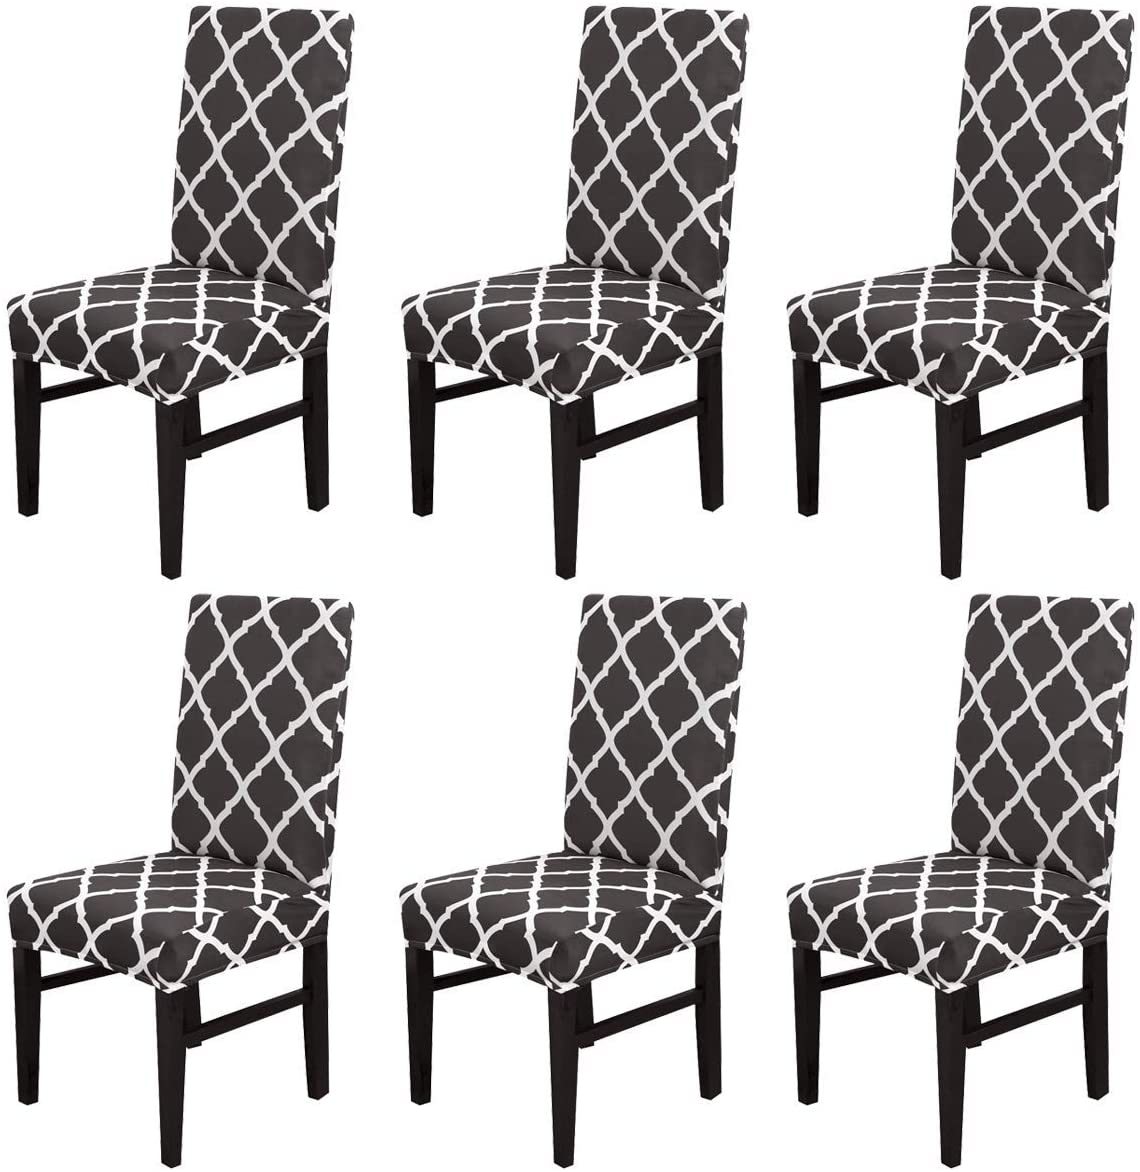 SINOSPARK Chair Cover,Stretch Dining Chair Protective Cover Slipcover,Elastic Chair Protector Seat Covers for Dining Room Wedding Banquet Party Decoration (Black Geometry, 6 Pack)